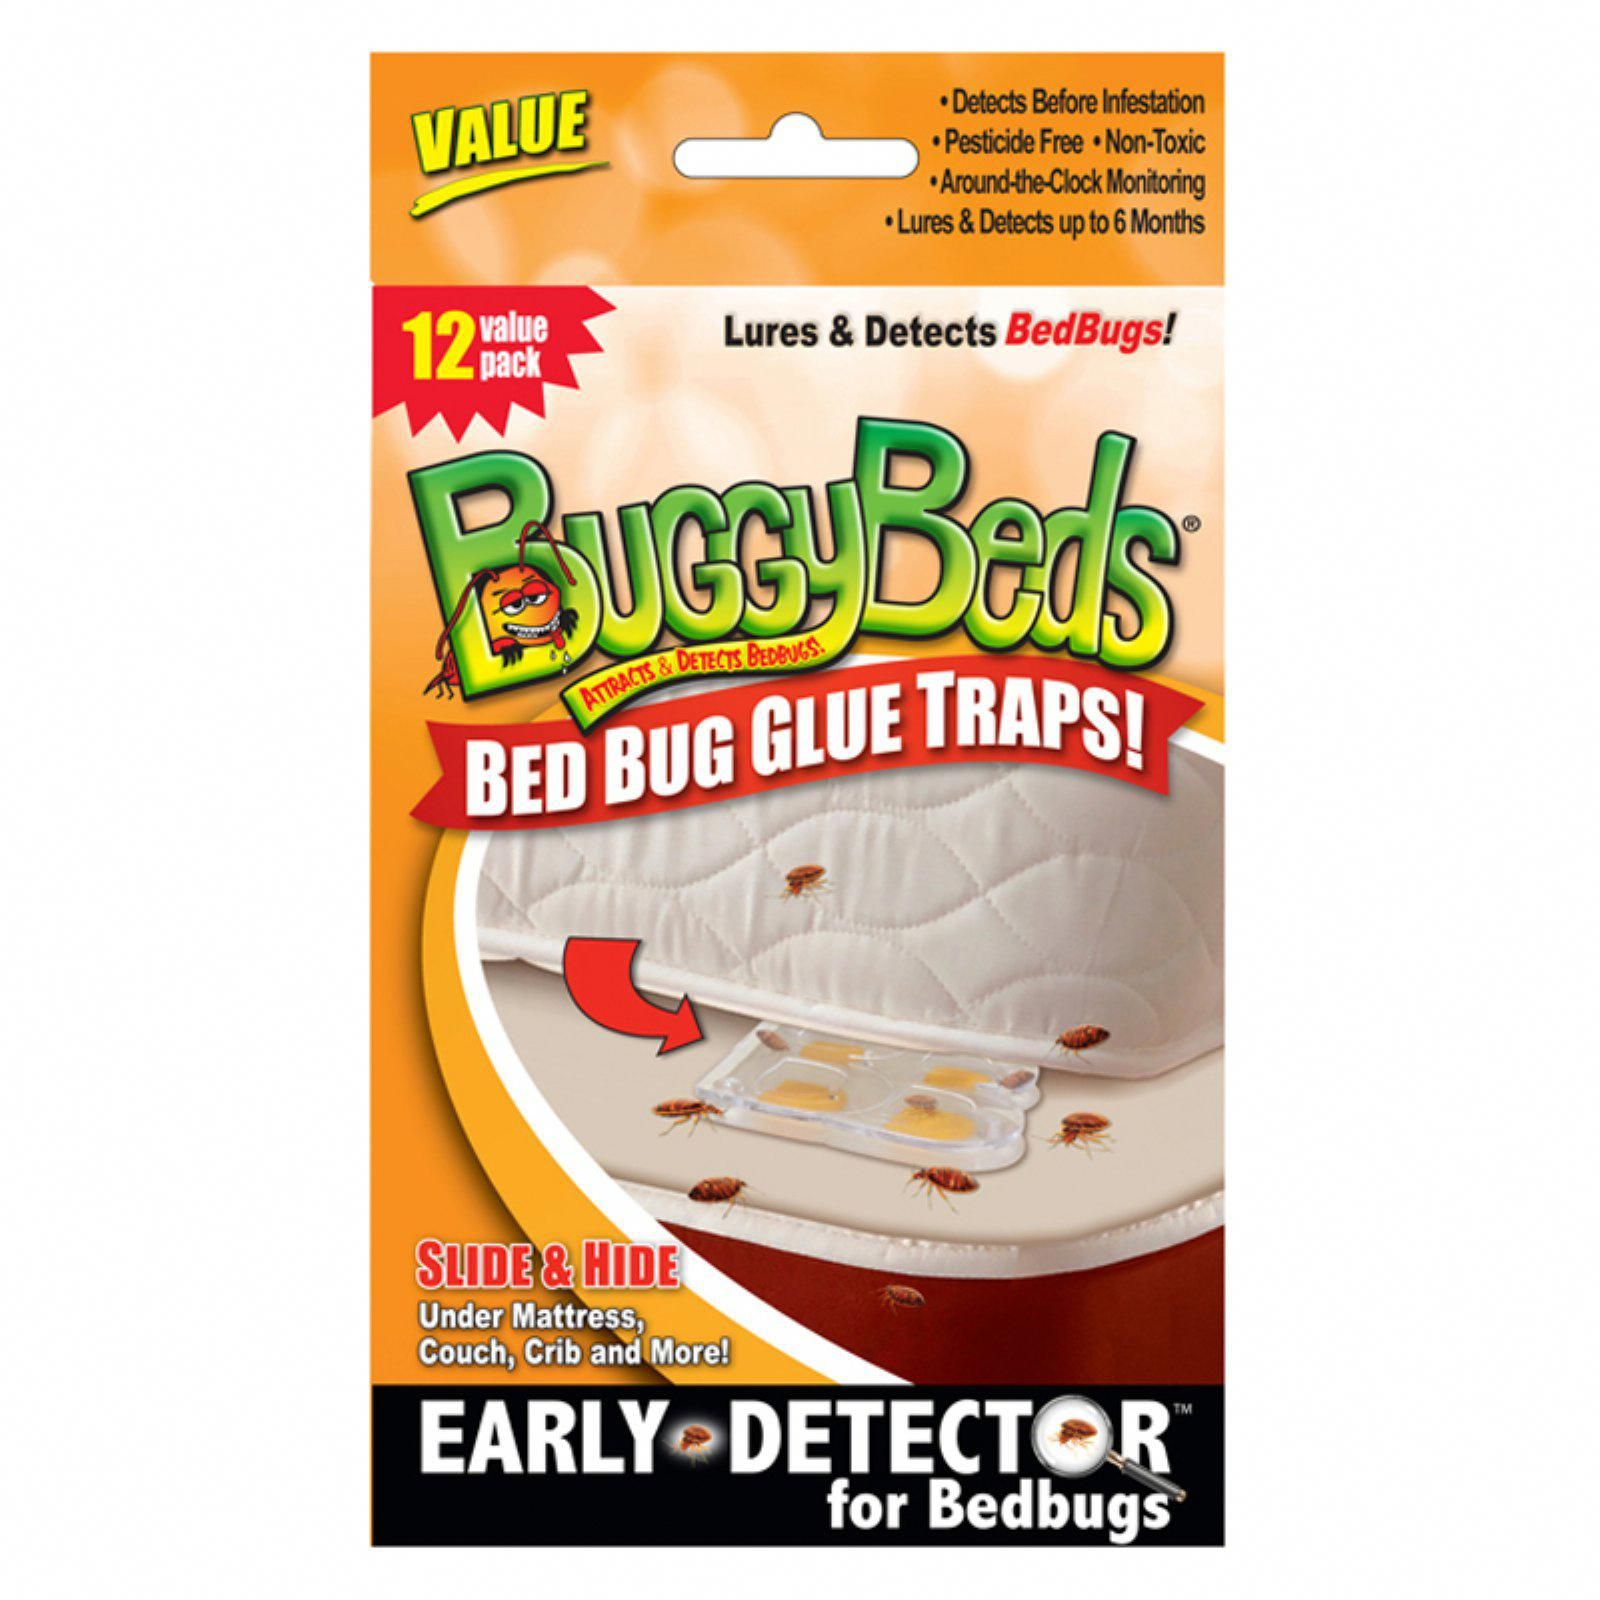 BuggyBeds Value Bed Bug Glue Traps 12 Pack